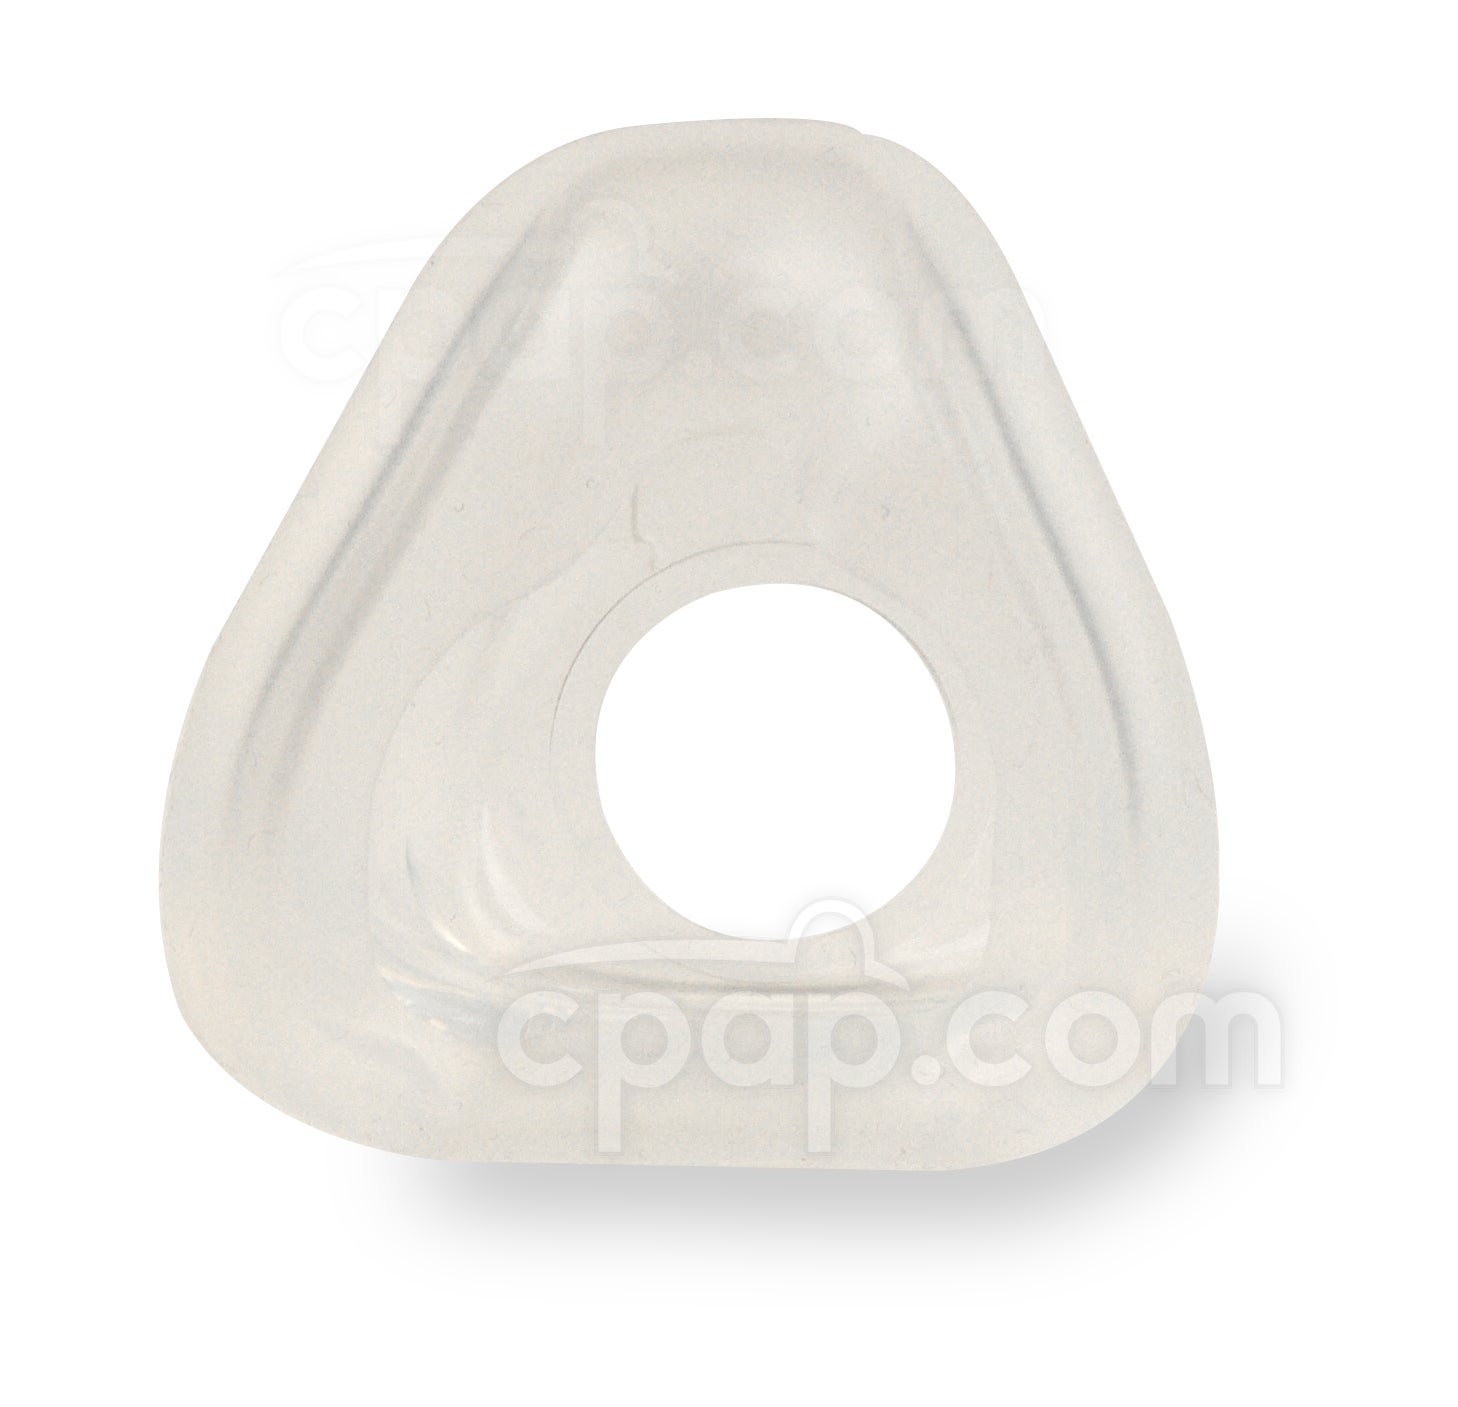 Cushion for Nonny Pediatric CPAP Mask